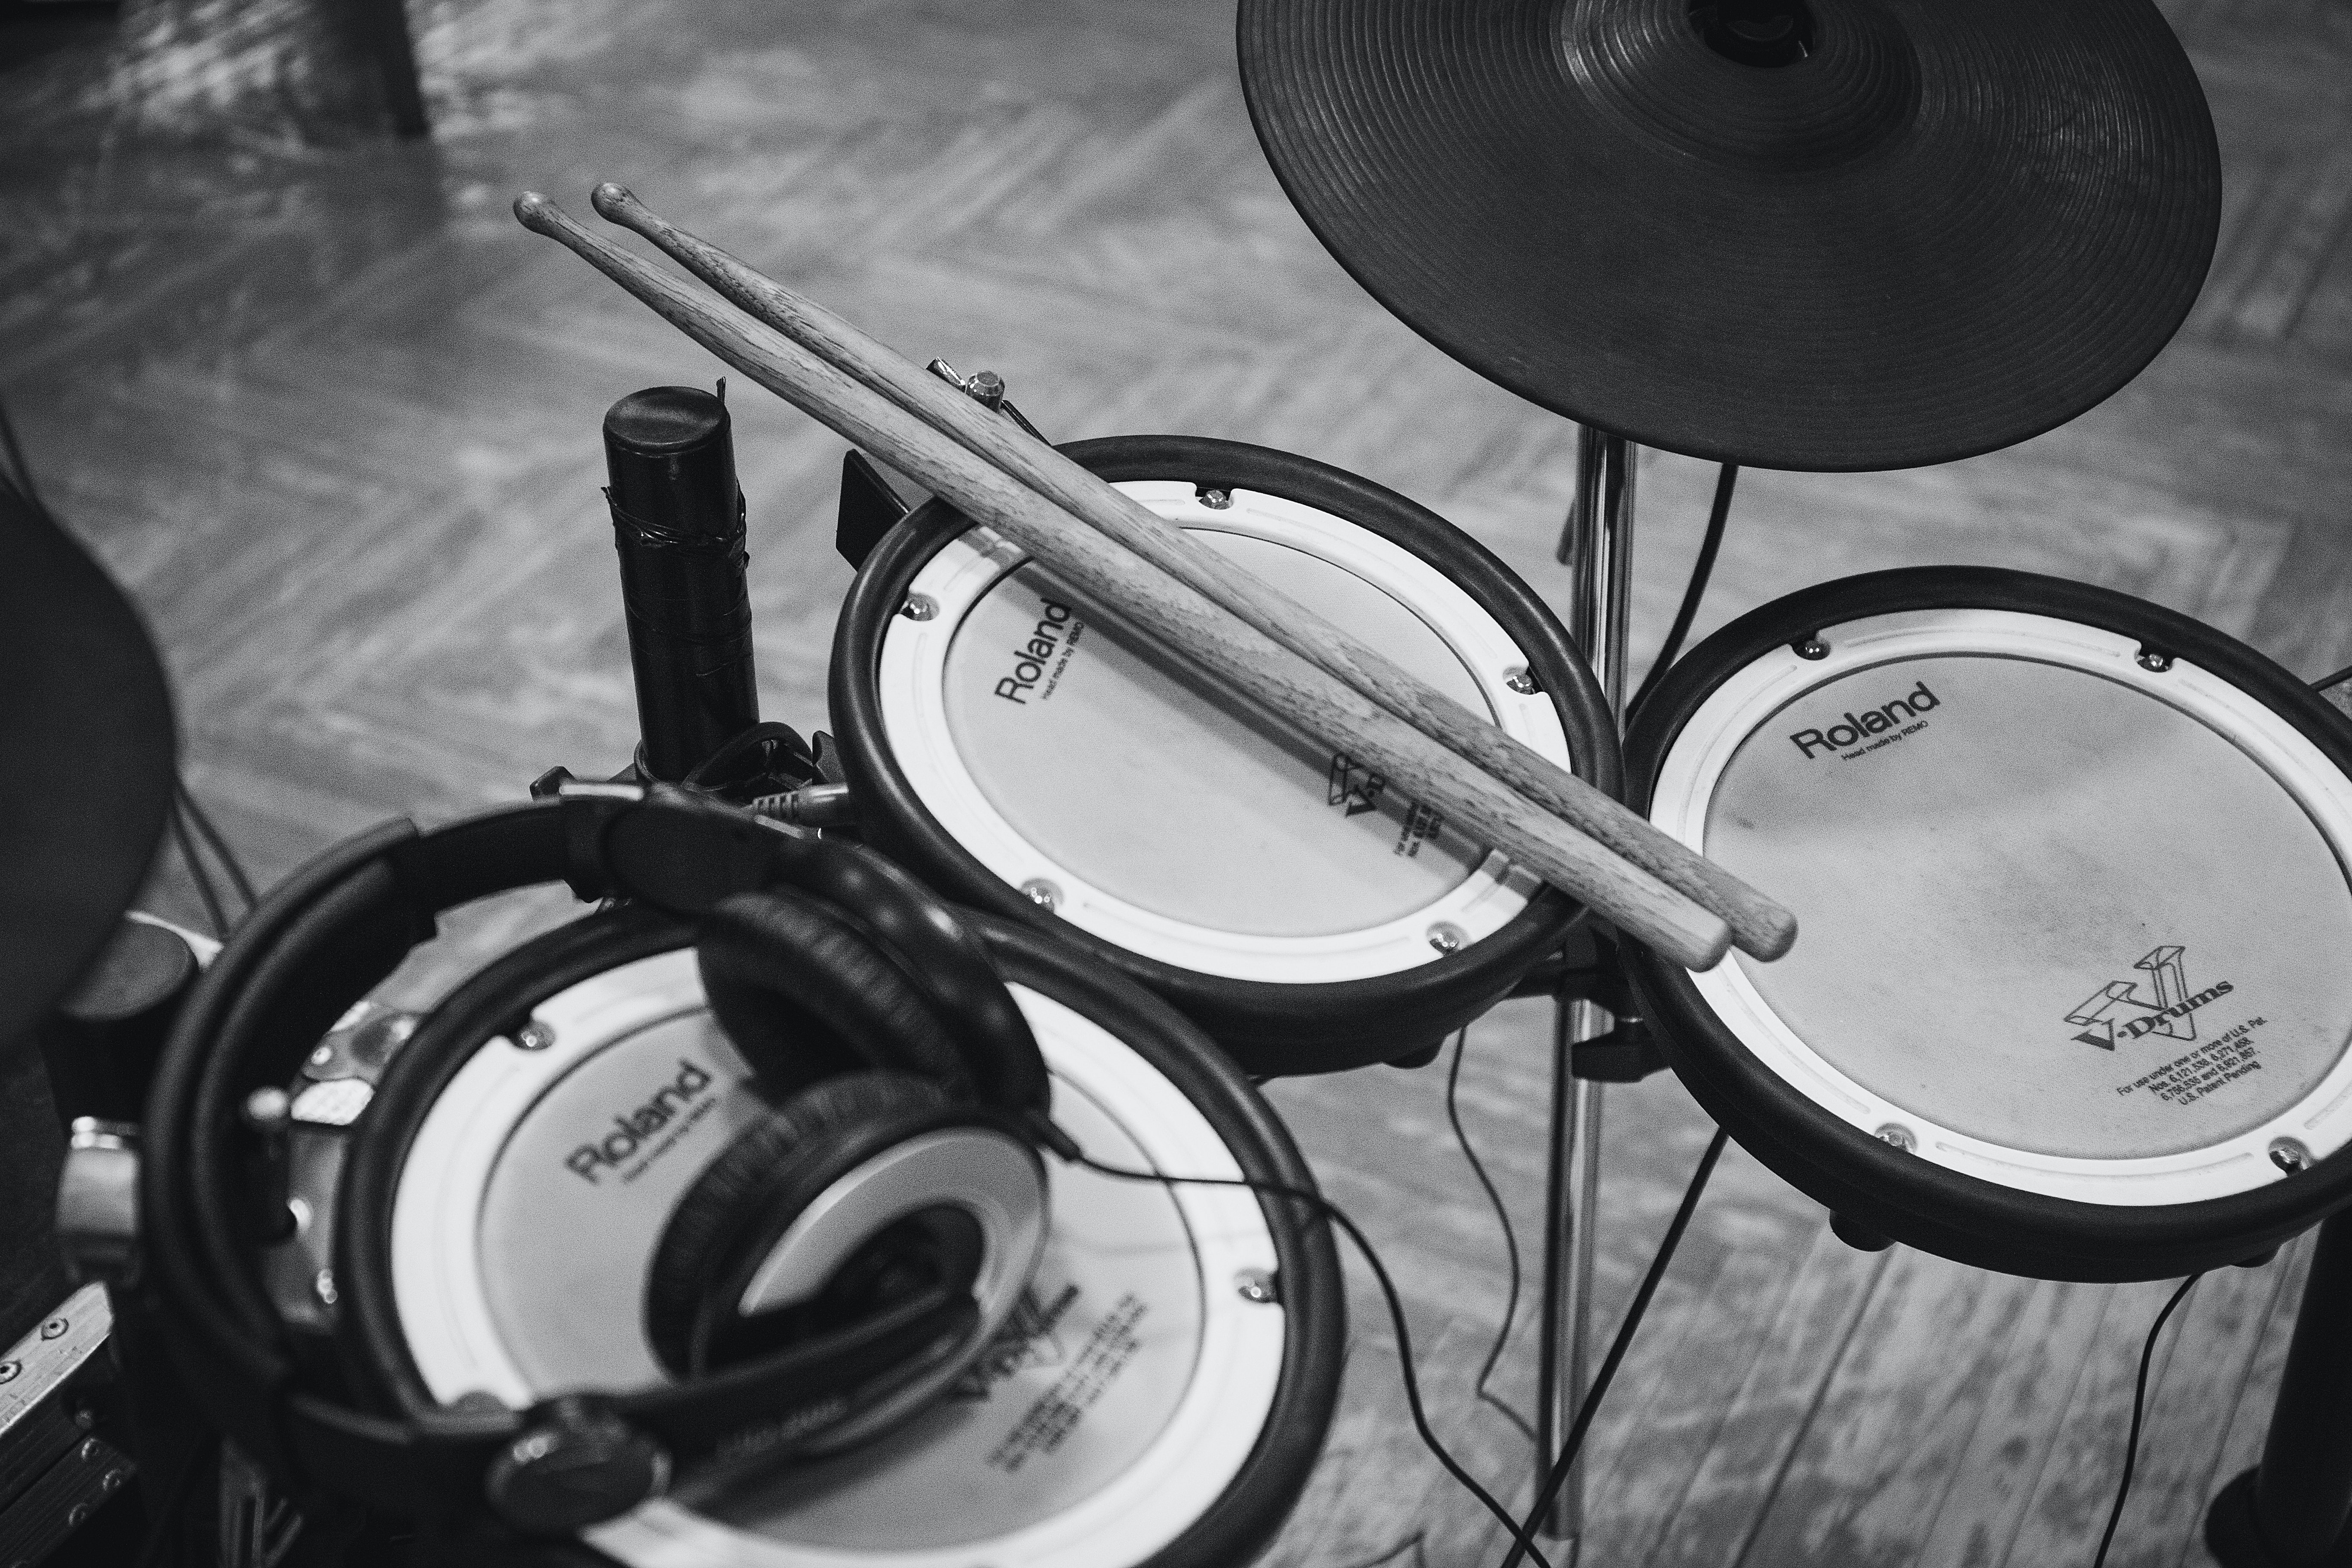 A black-and-white shot of a Roland drumset with headphones and drumsticks